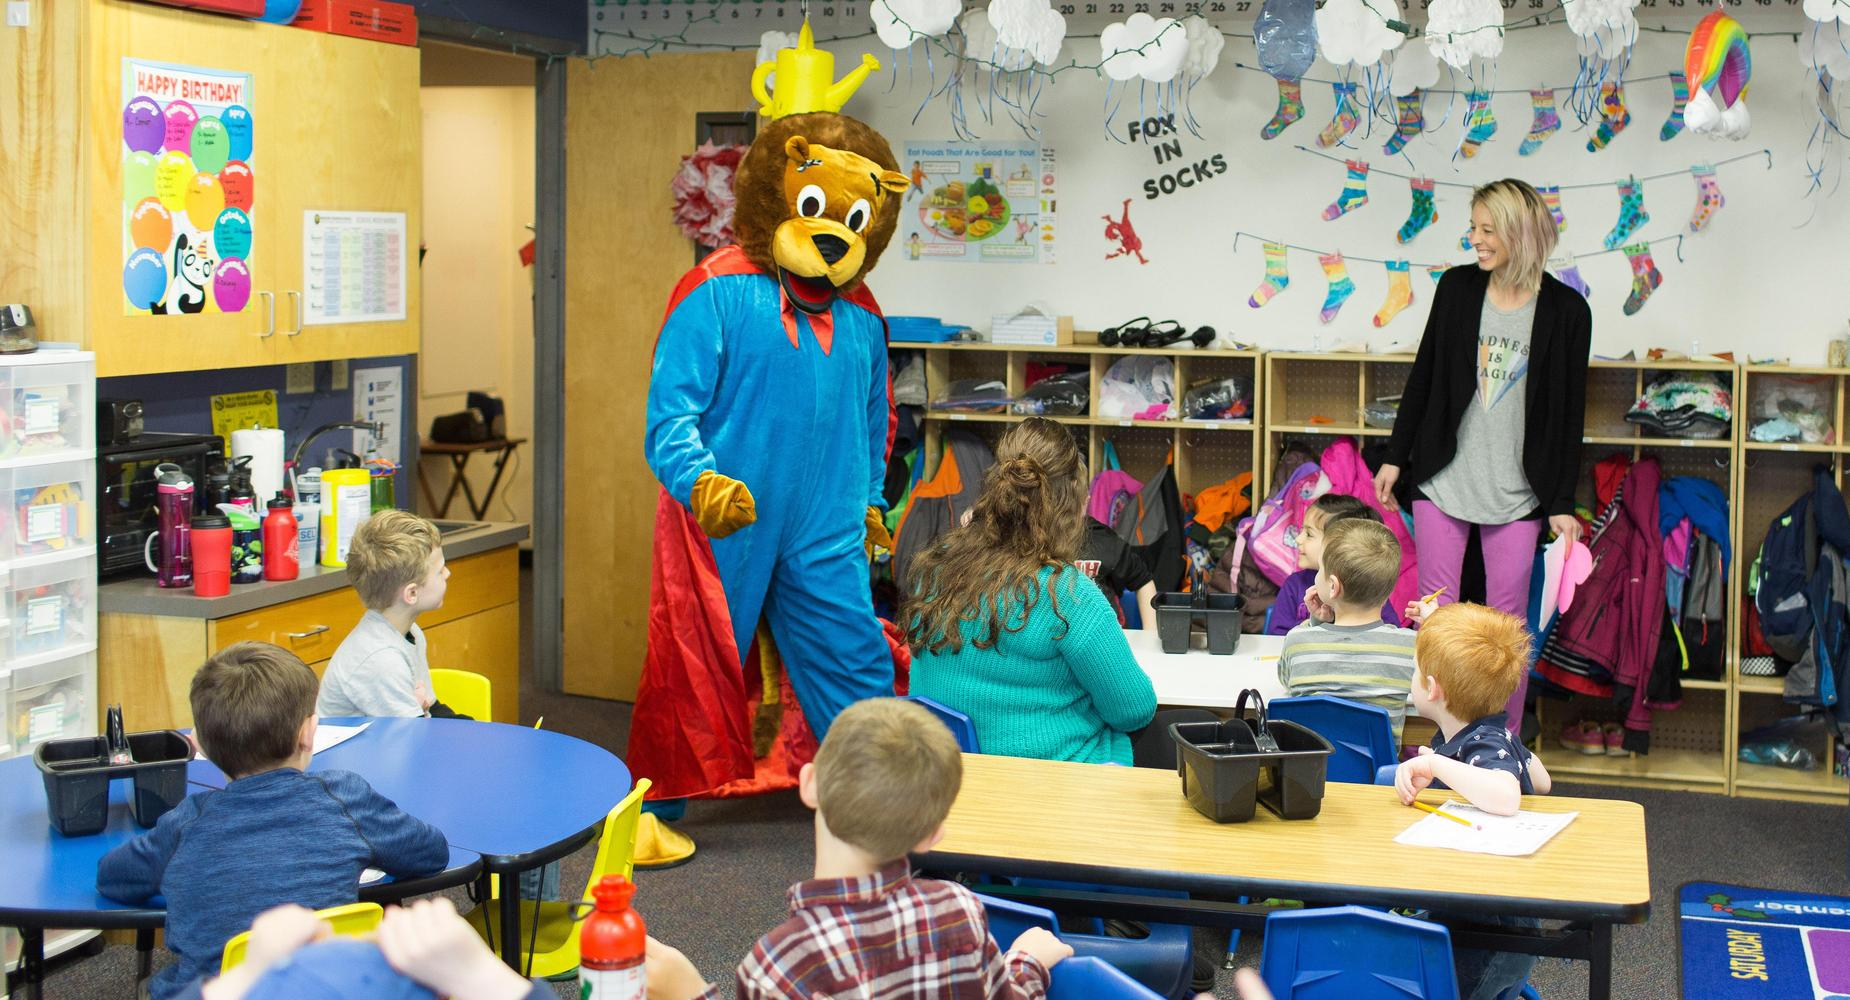 Moscow Charter School's Kevin the Kindness Lion makes a visit to the classrooms